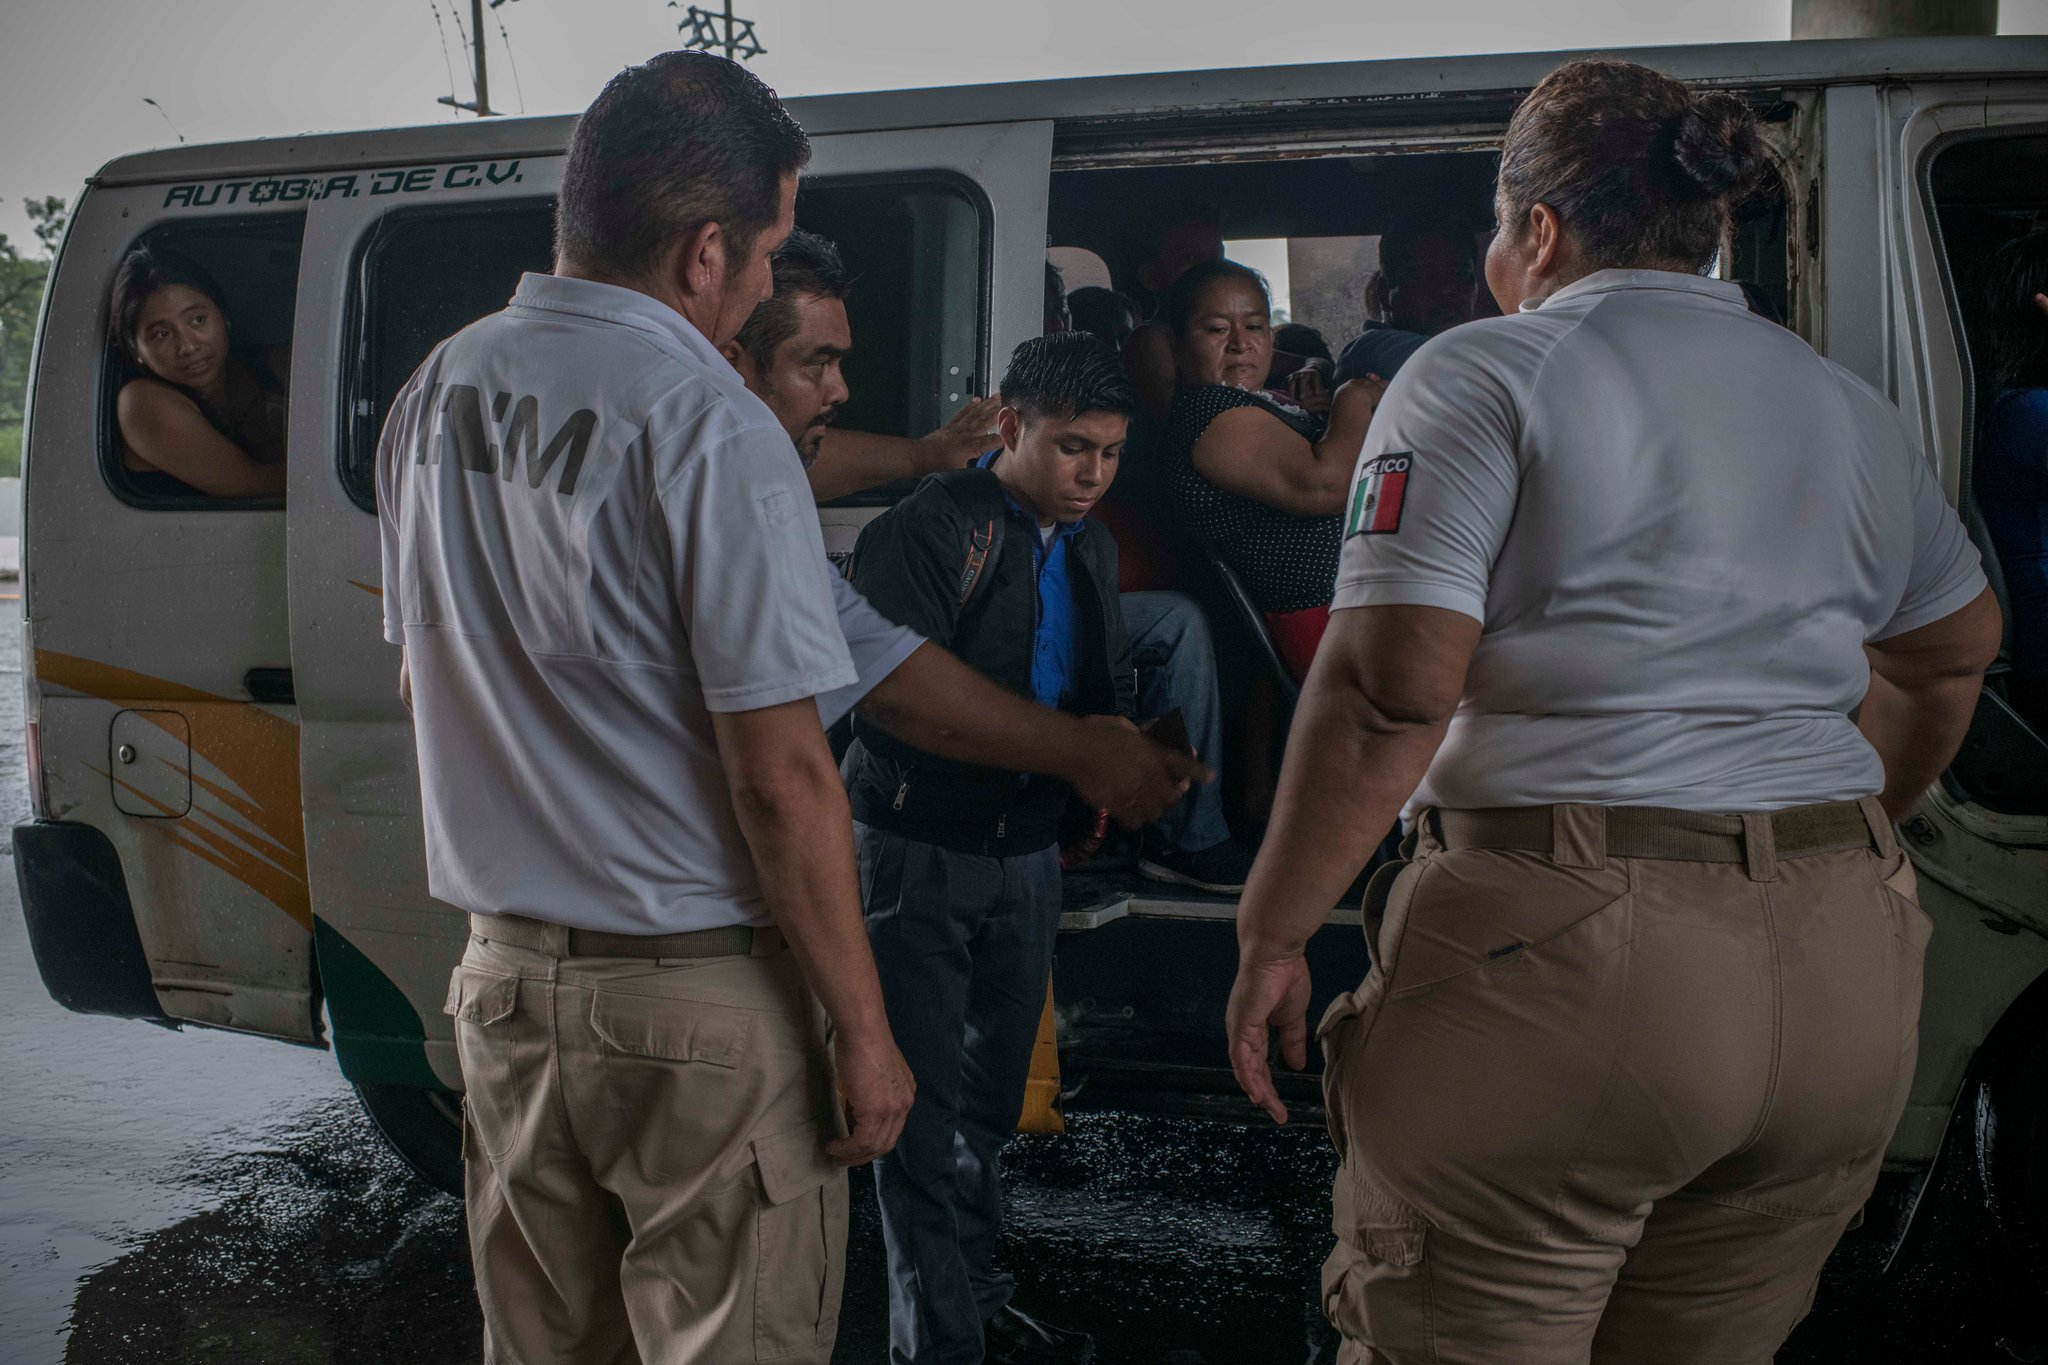 The Mexican authorities detained migrants at a checkpoint near the border with Guatemala on Sunday. The Trump administration wants the Mexican government to stop all undocumented migrants in Mexico. Credit Daniele Volpe for The New York Times